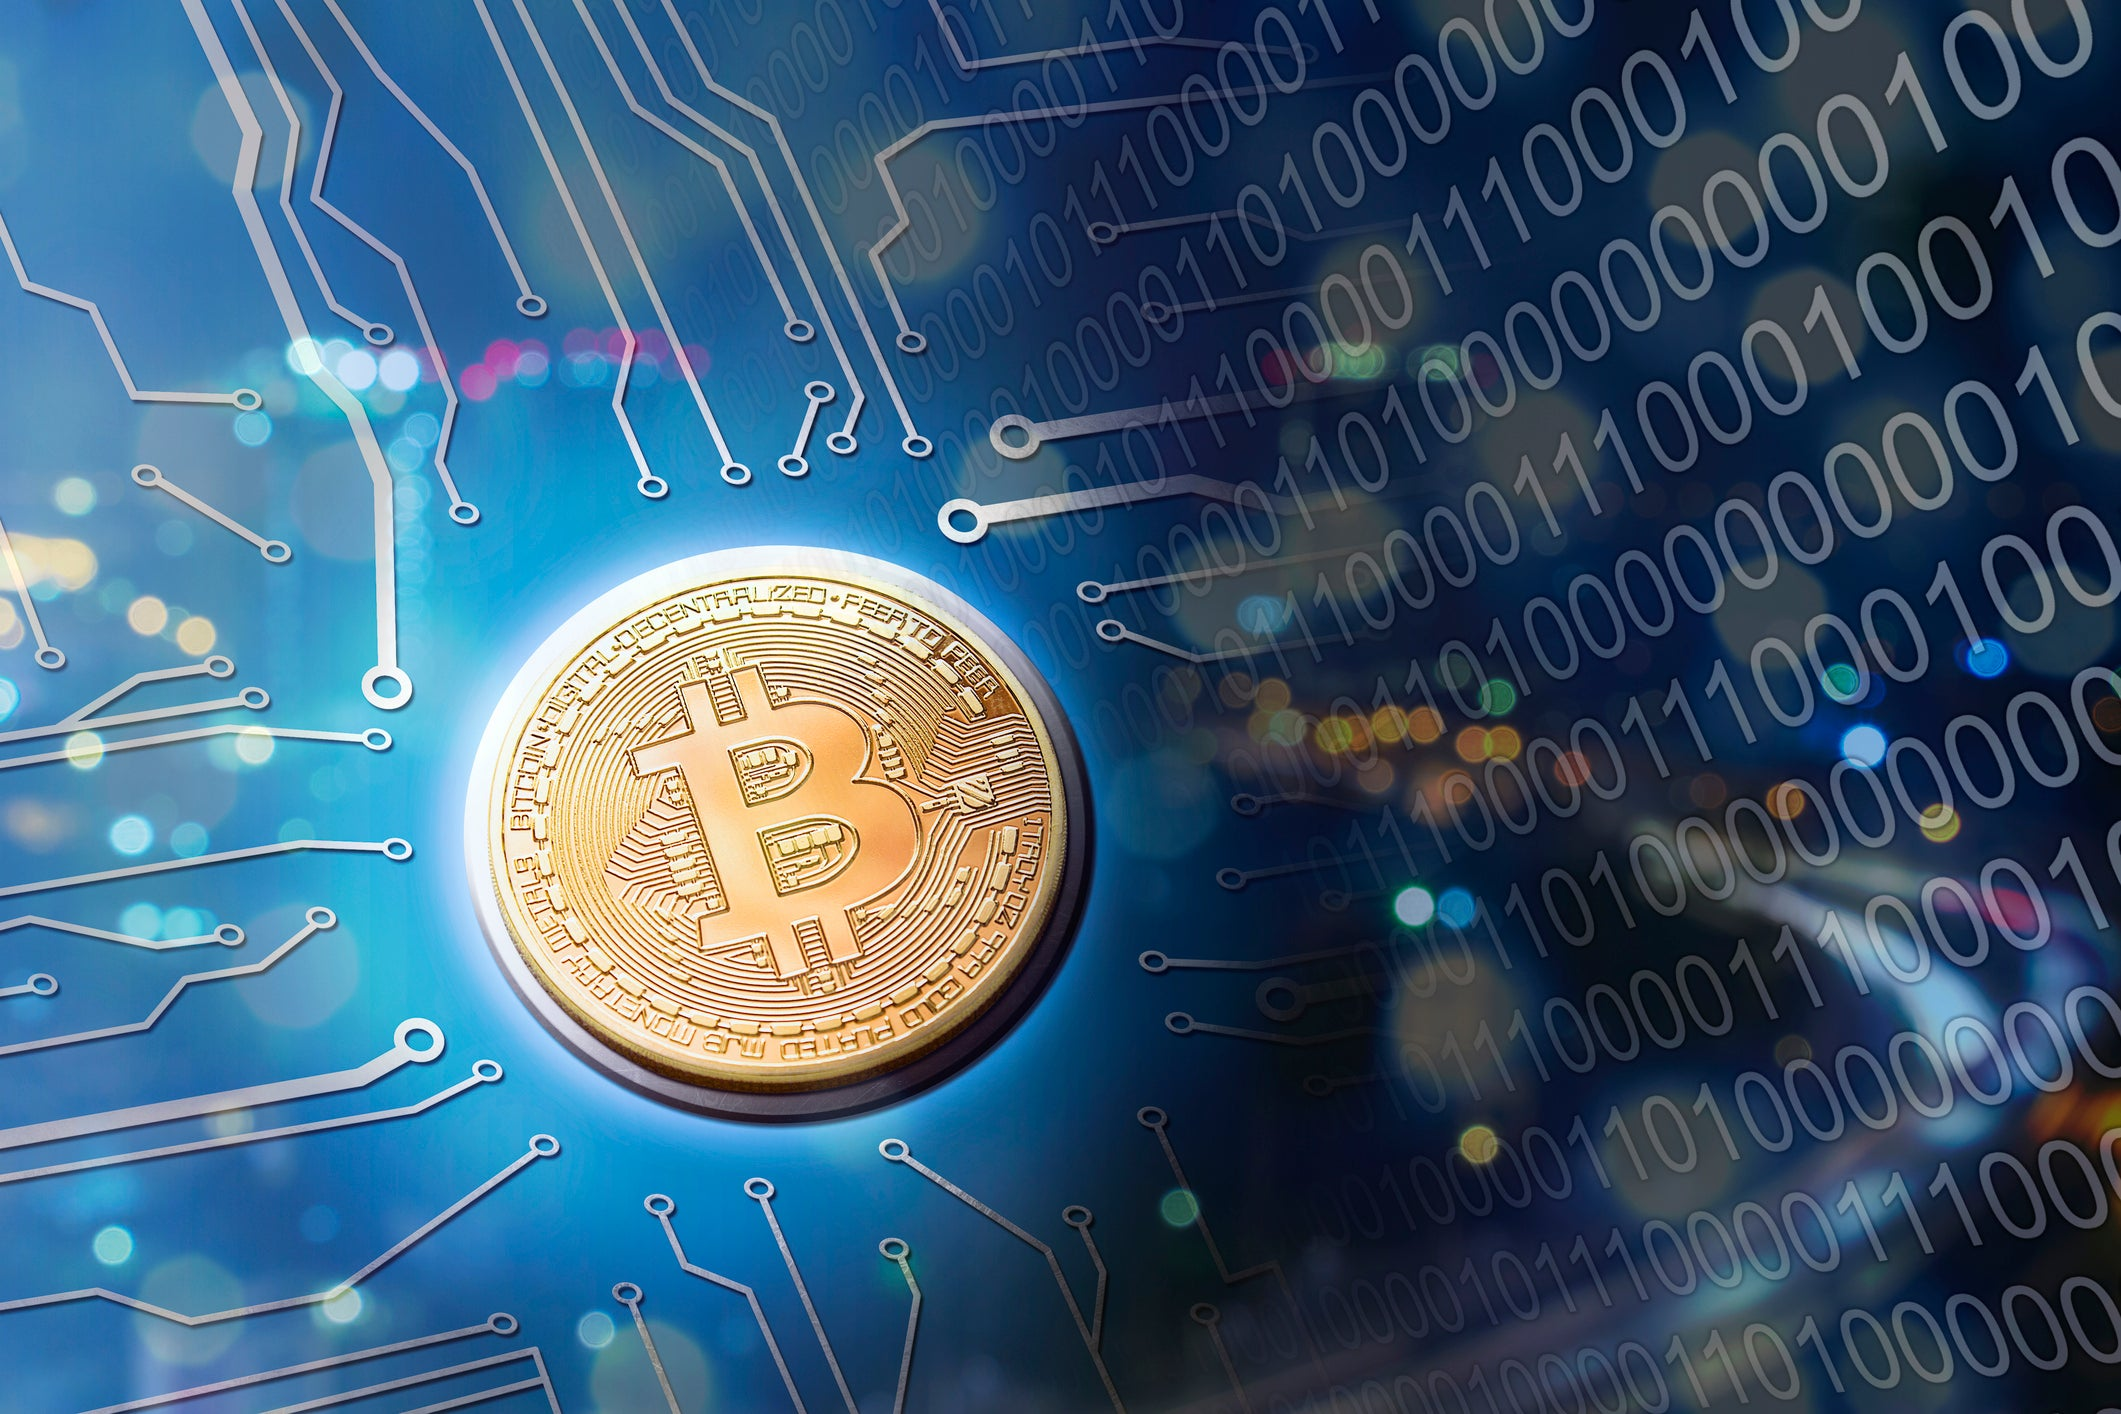 Blockchain Is Changing the World. Should You Buy Bitcoin?